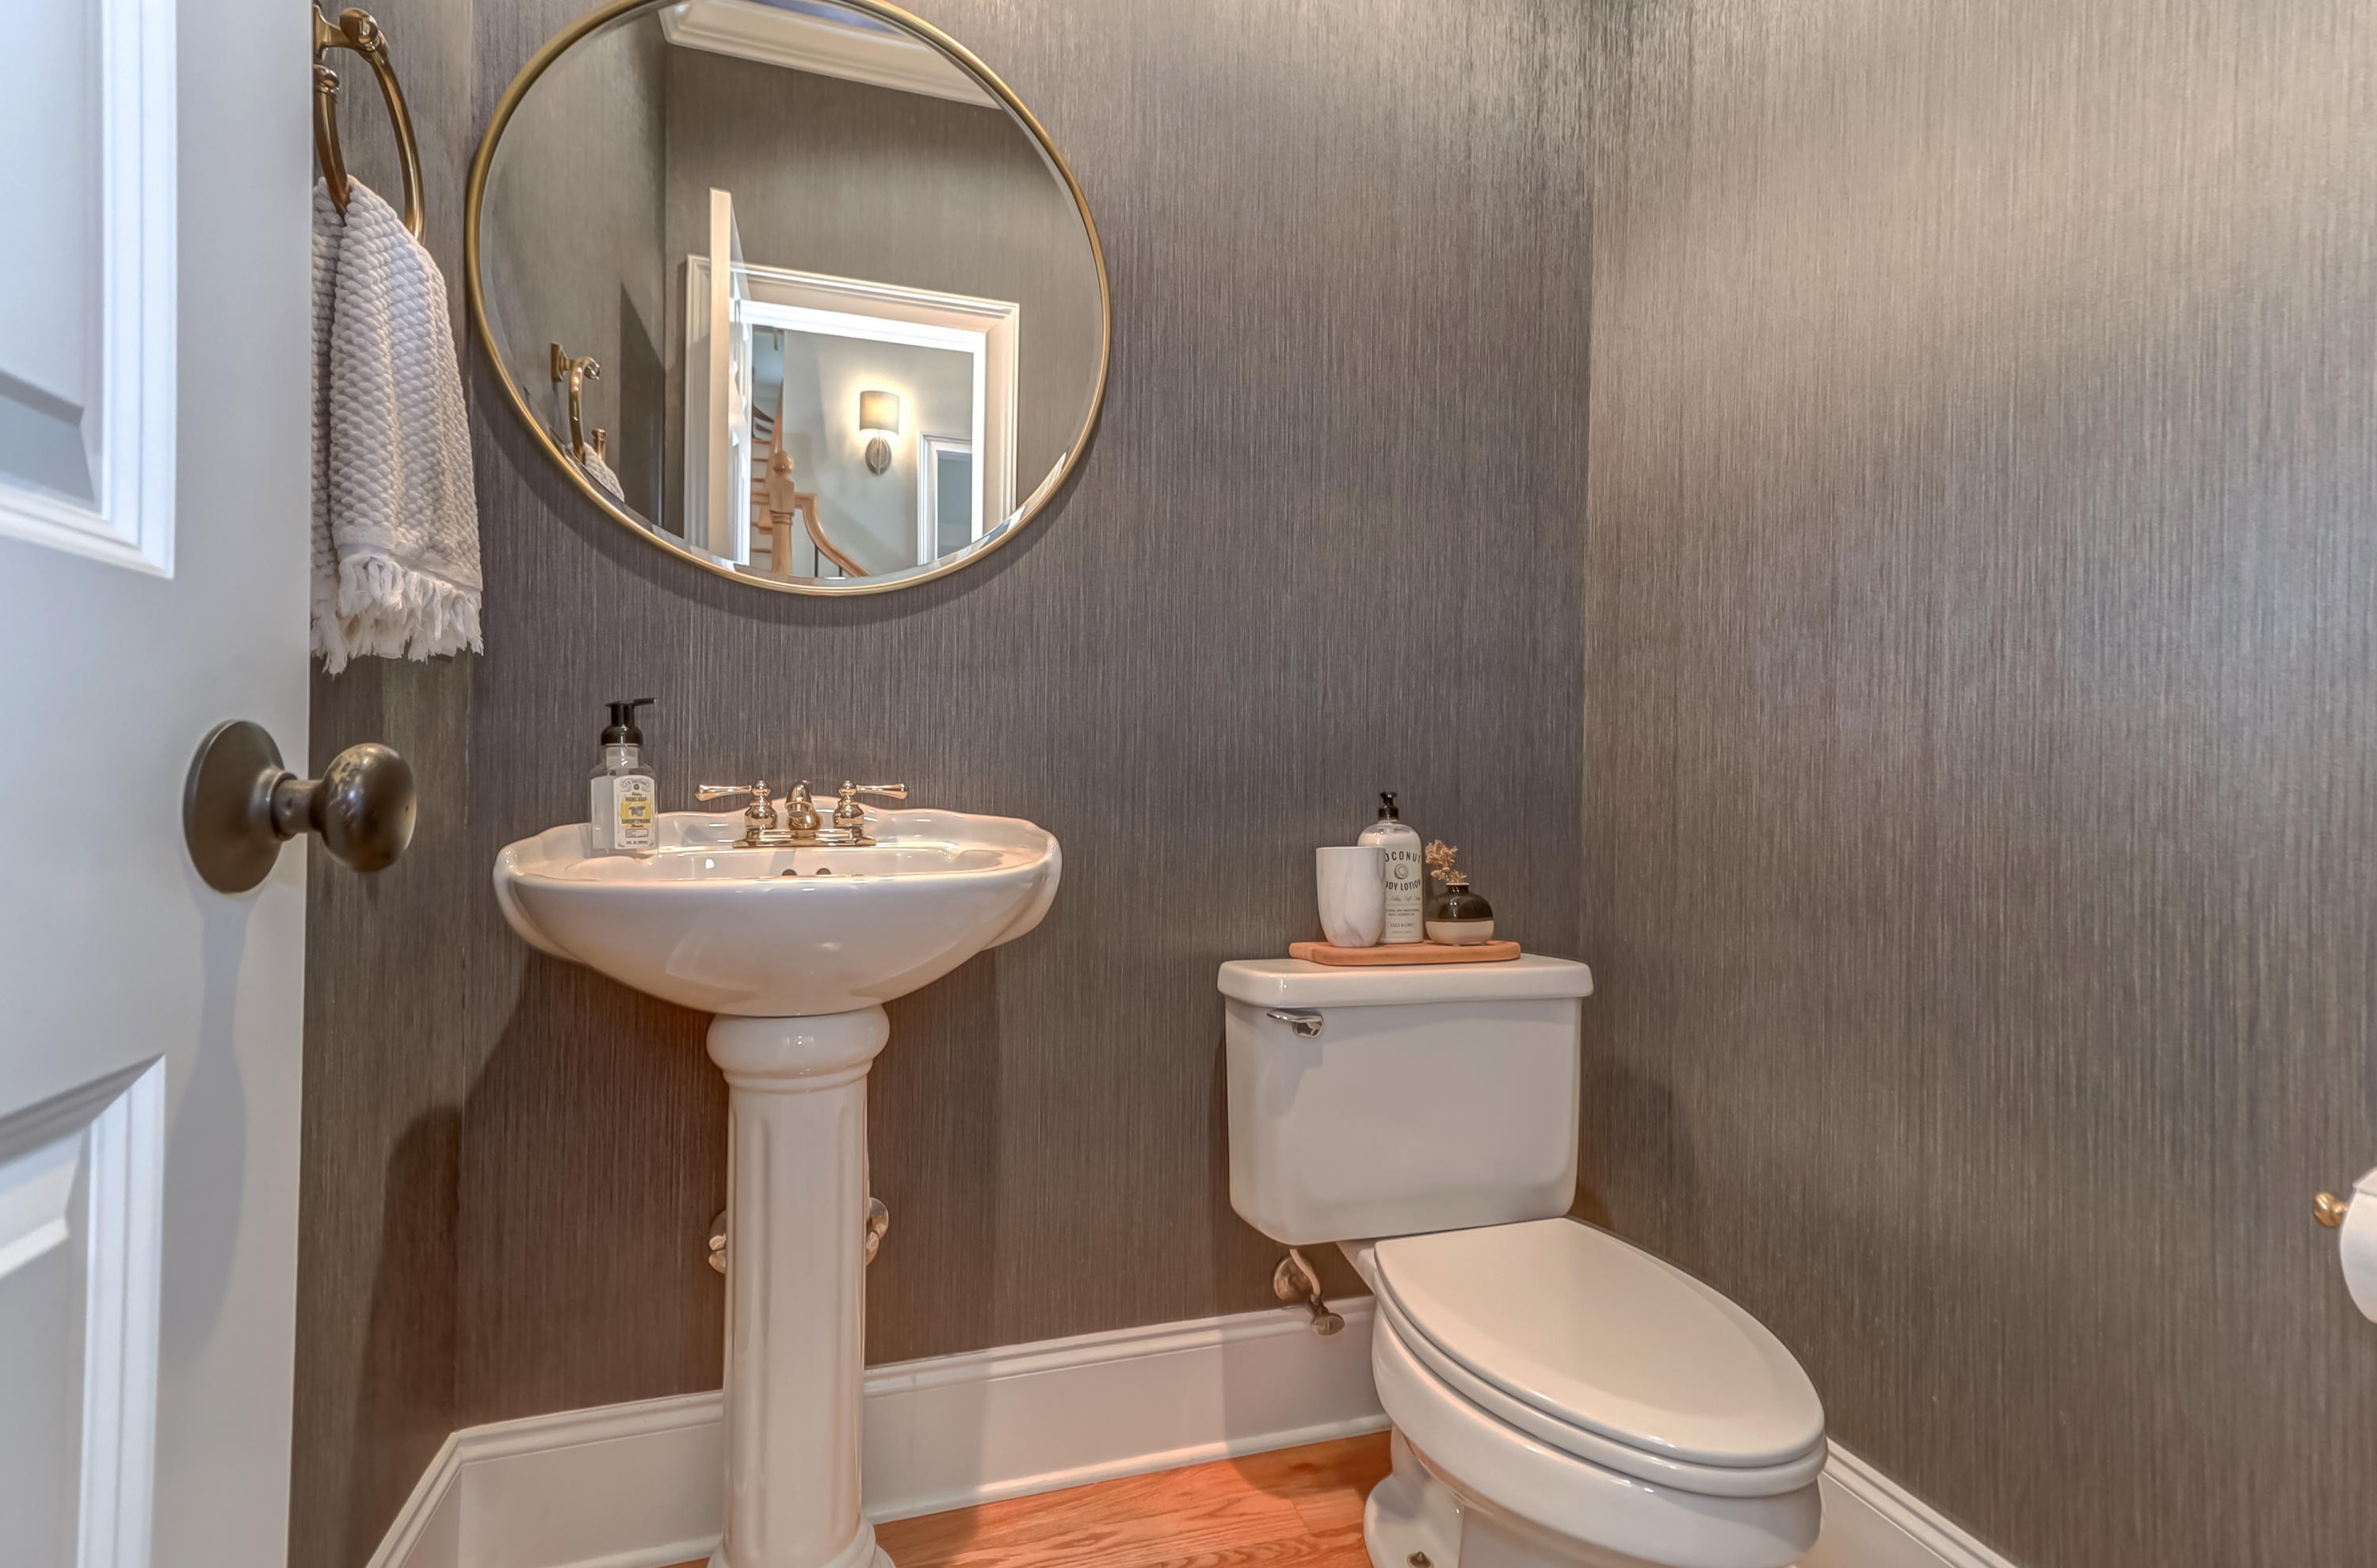 Woodward Pointe Homes For Sale - 657 White Chapel, Charleston, SC - 50